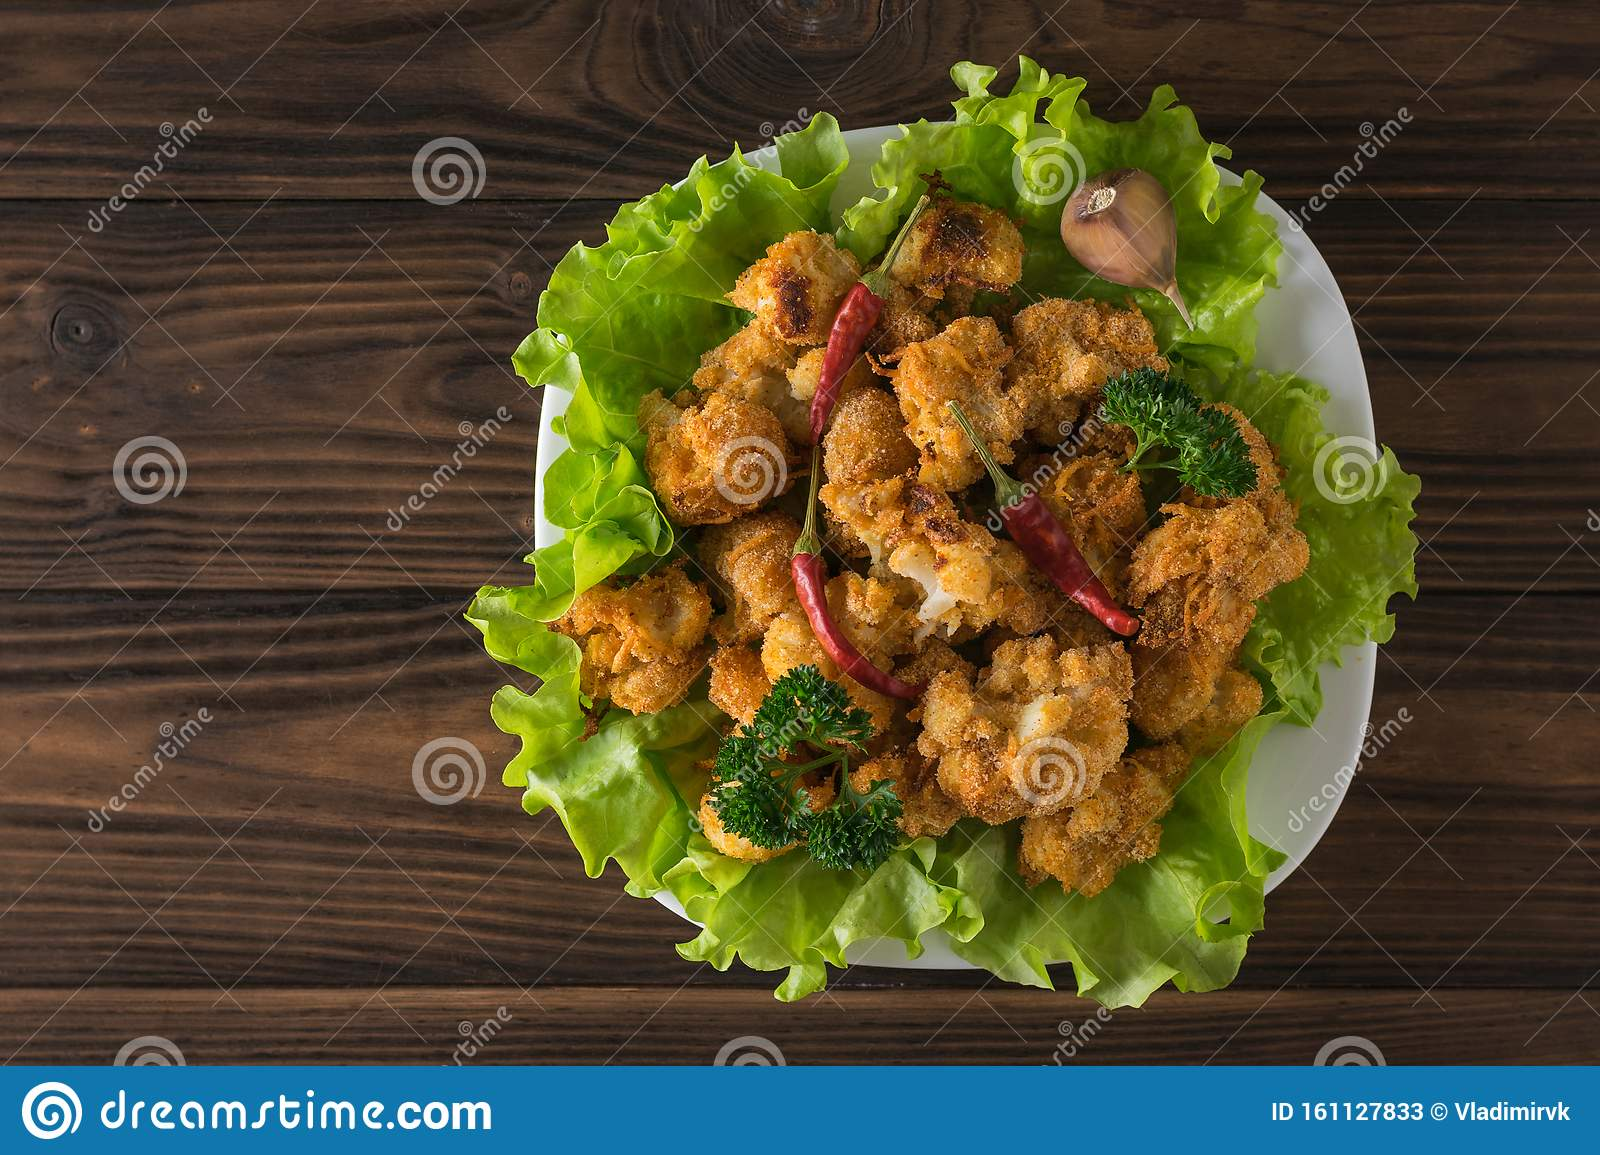 Roasted Cauliflower Inflorescences With Pepper On Lettuce Leaves Flat Lay Stock Image Image Of Background Baked 161127833